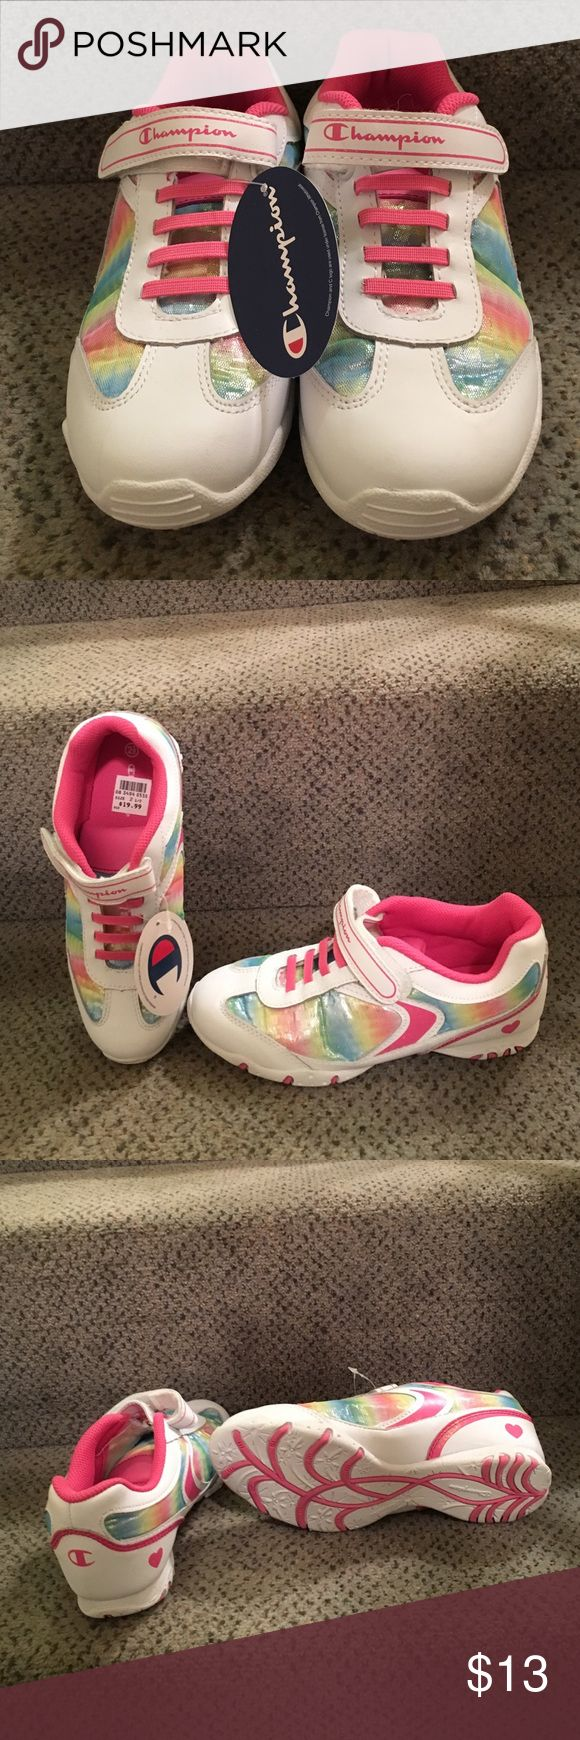 NIB Champion girl Rainbow Sparkle Jog 2.5 Sneakers Pretty rainbow Champion girl sneakers with a Velcro strap and webbed pattern on the bottom. Includes original box and packaging. Never worn. Champion Shoes Sneakers